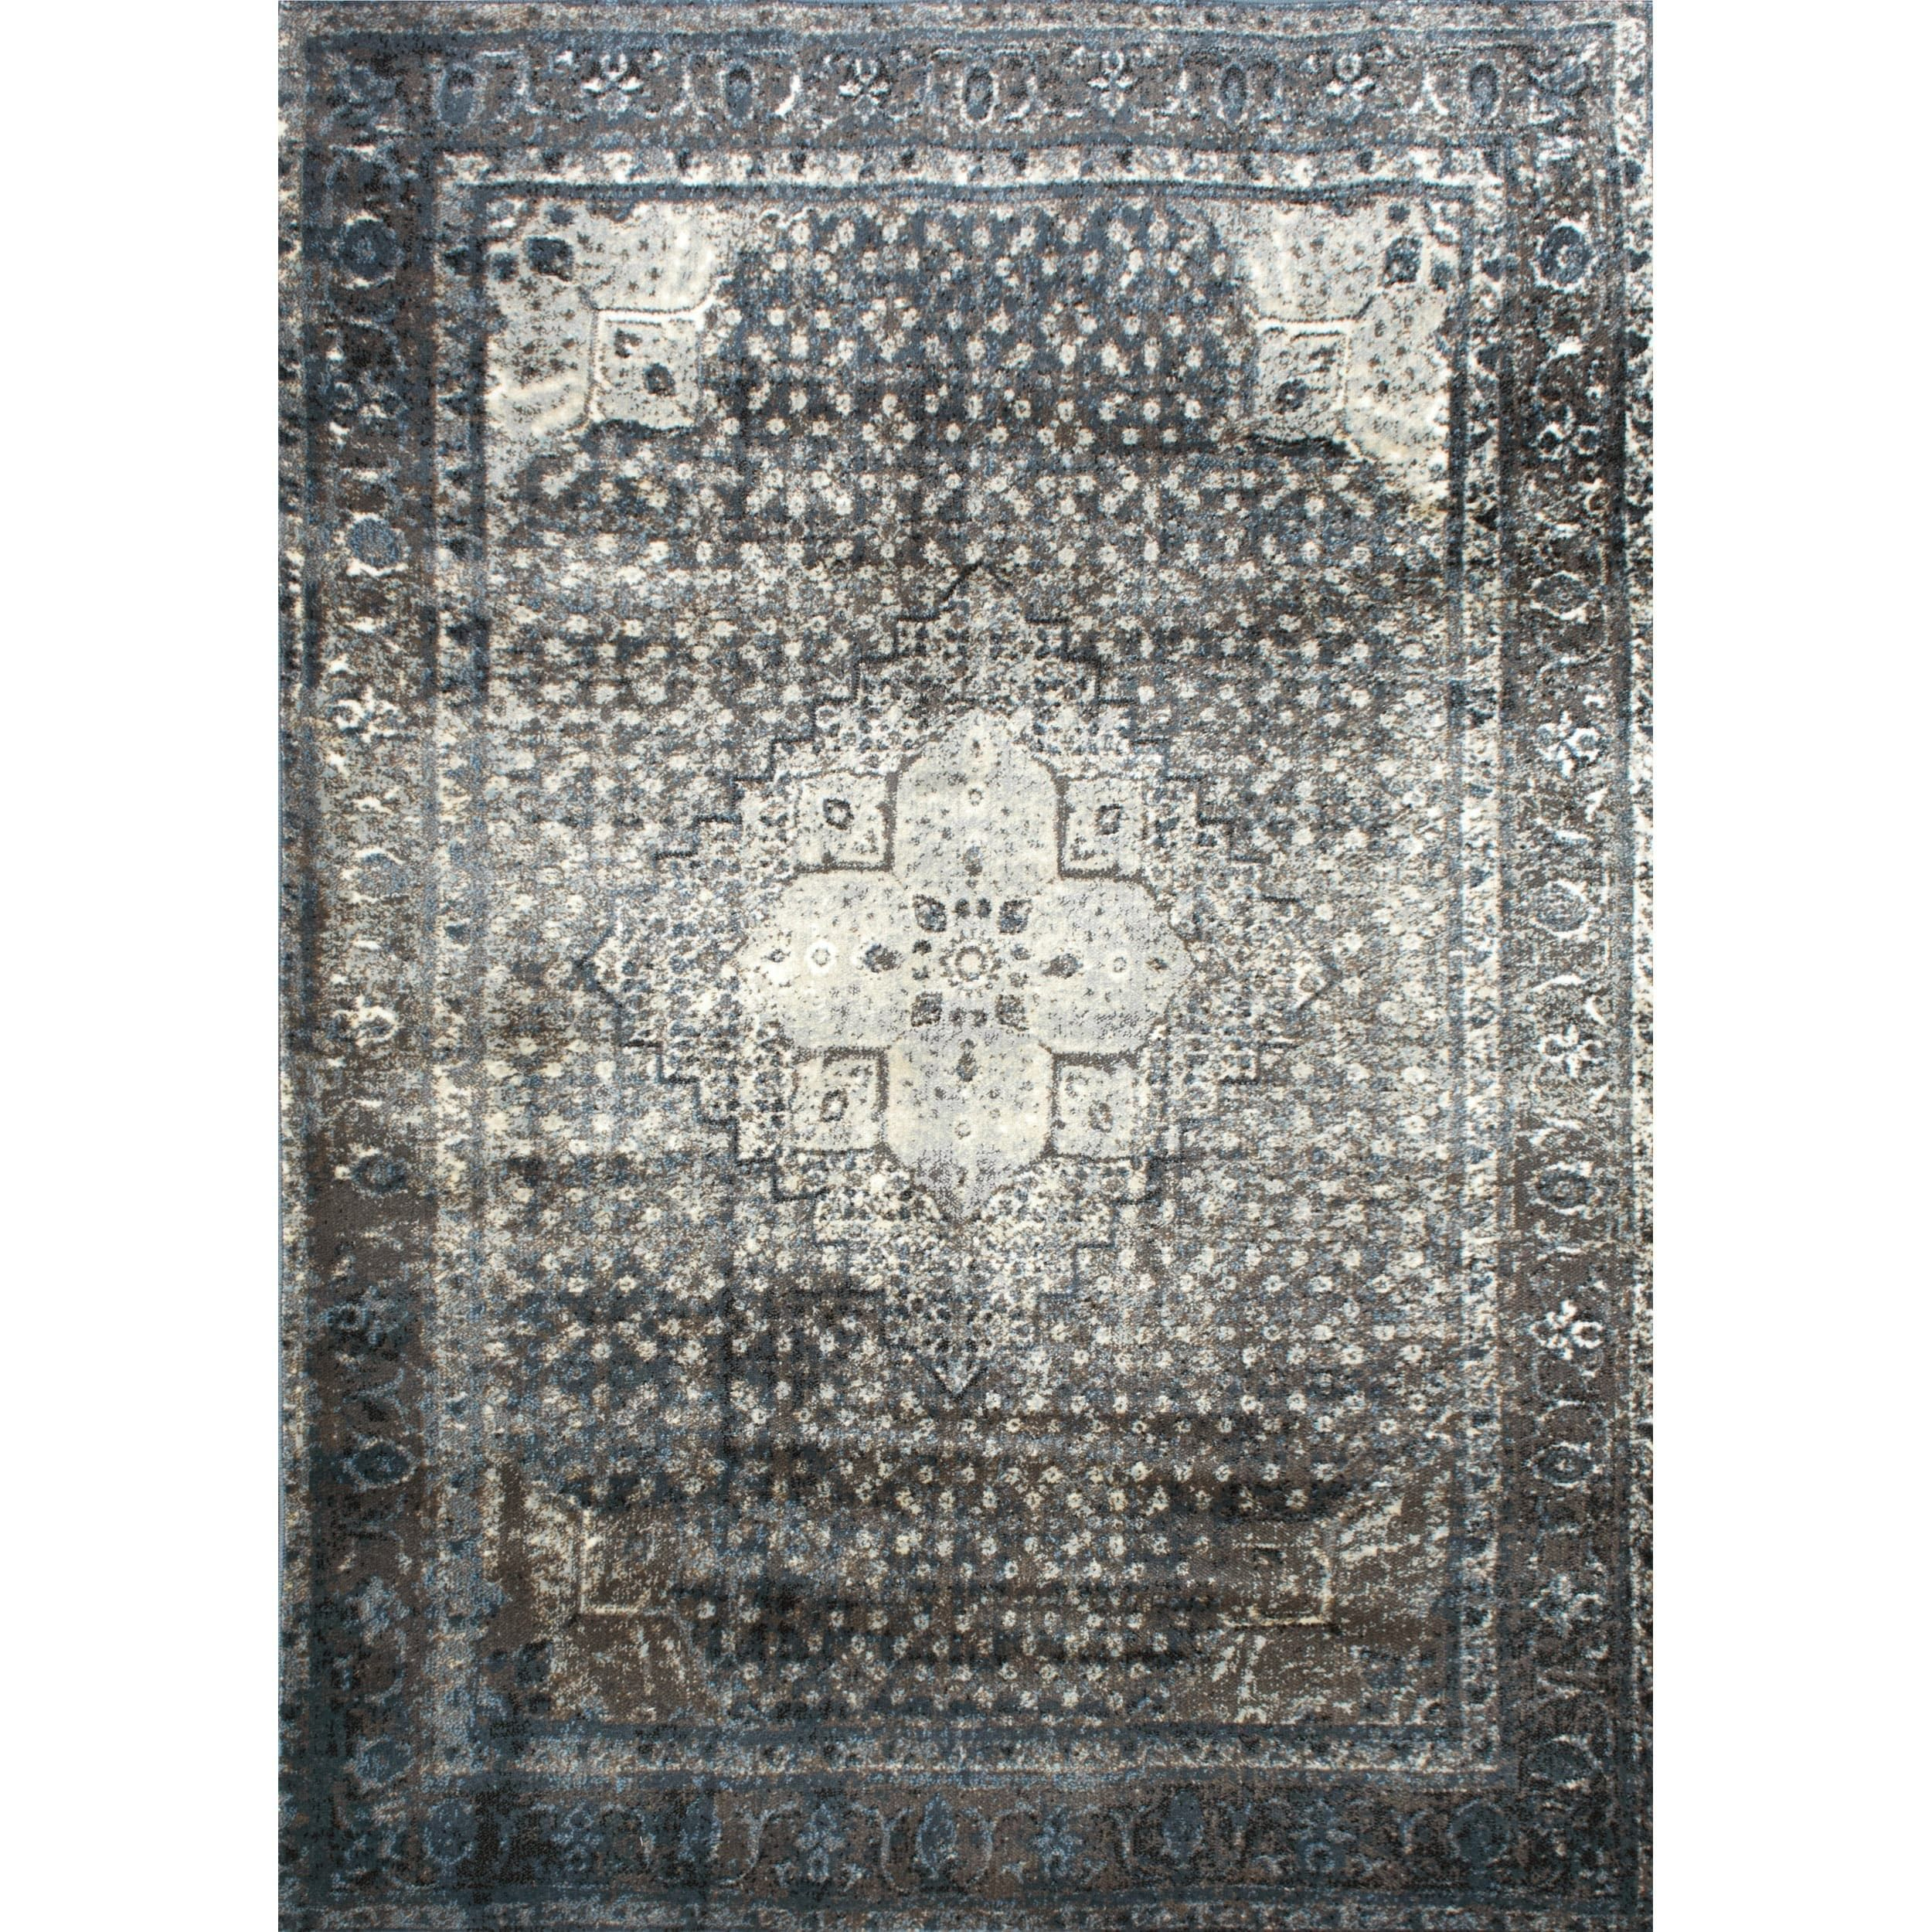 Online Shopping Bedding Furniture Electronics Jewelry Clothing More Blue Gray Area Rug Vintage Area Rugs Area Rugs